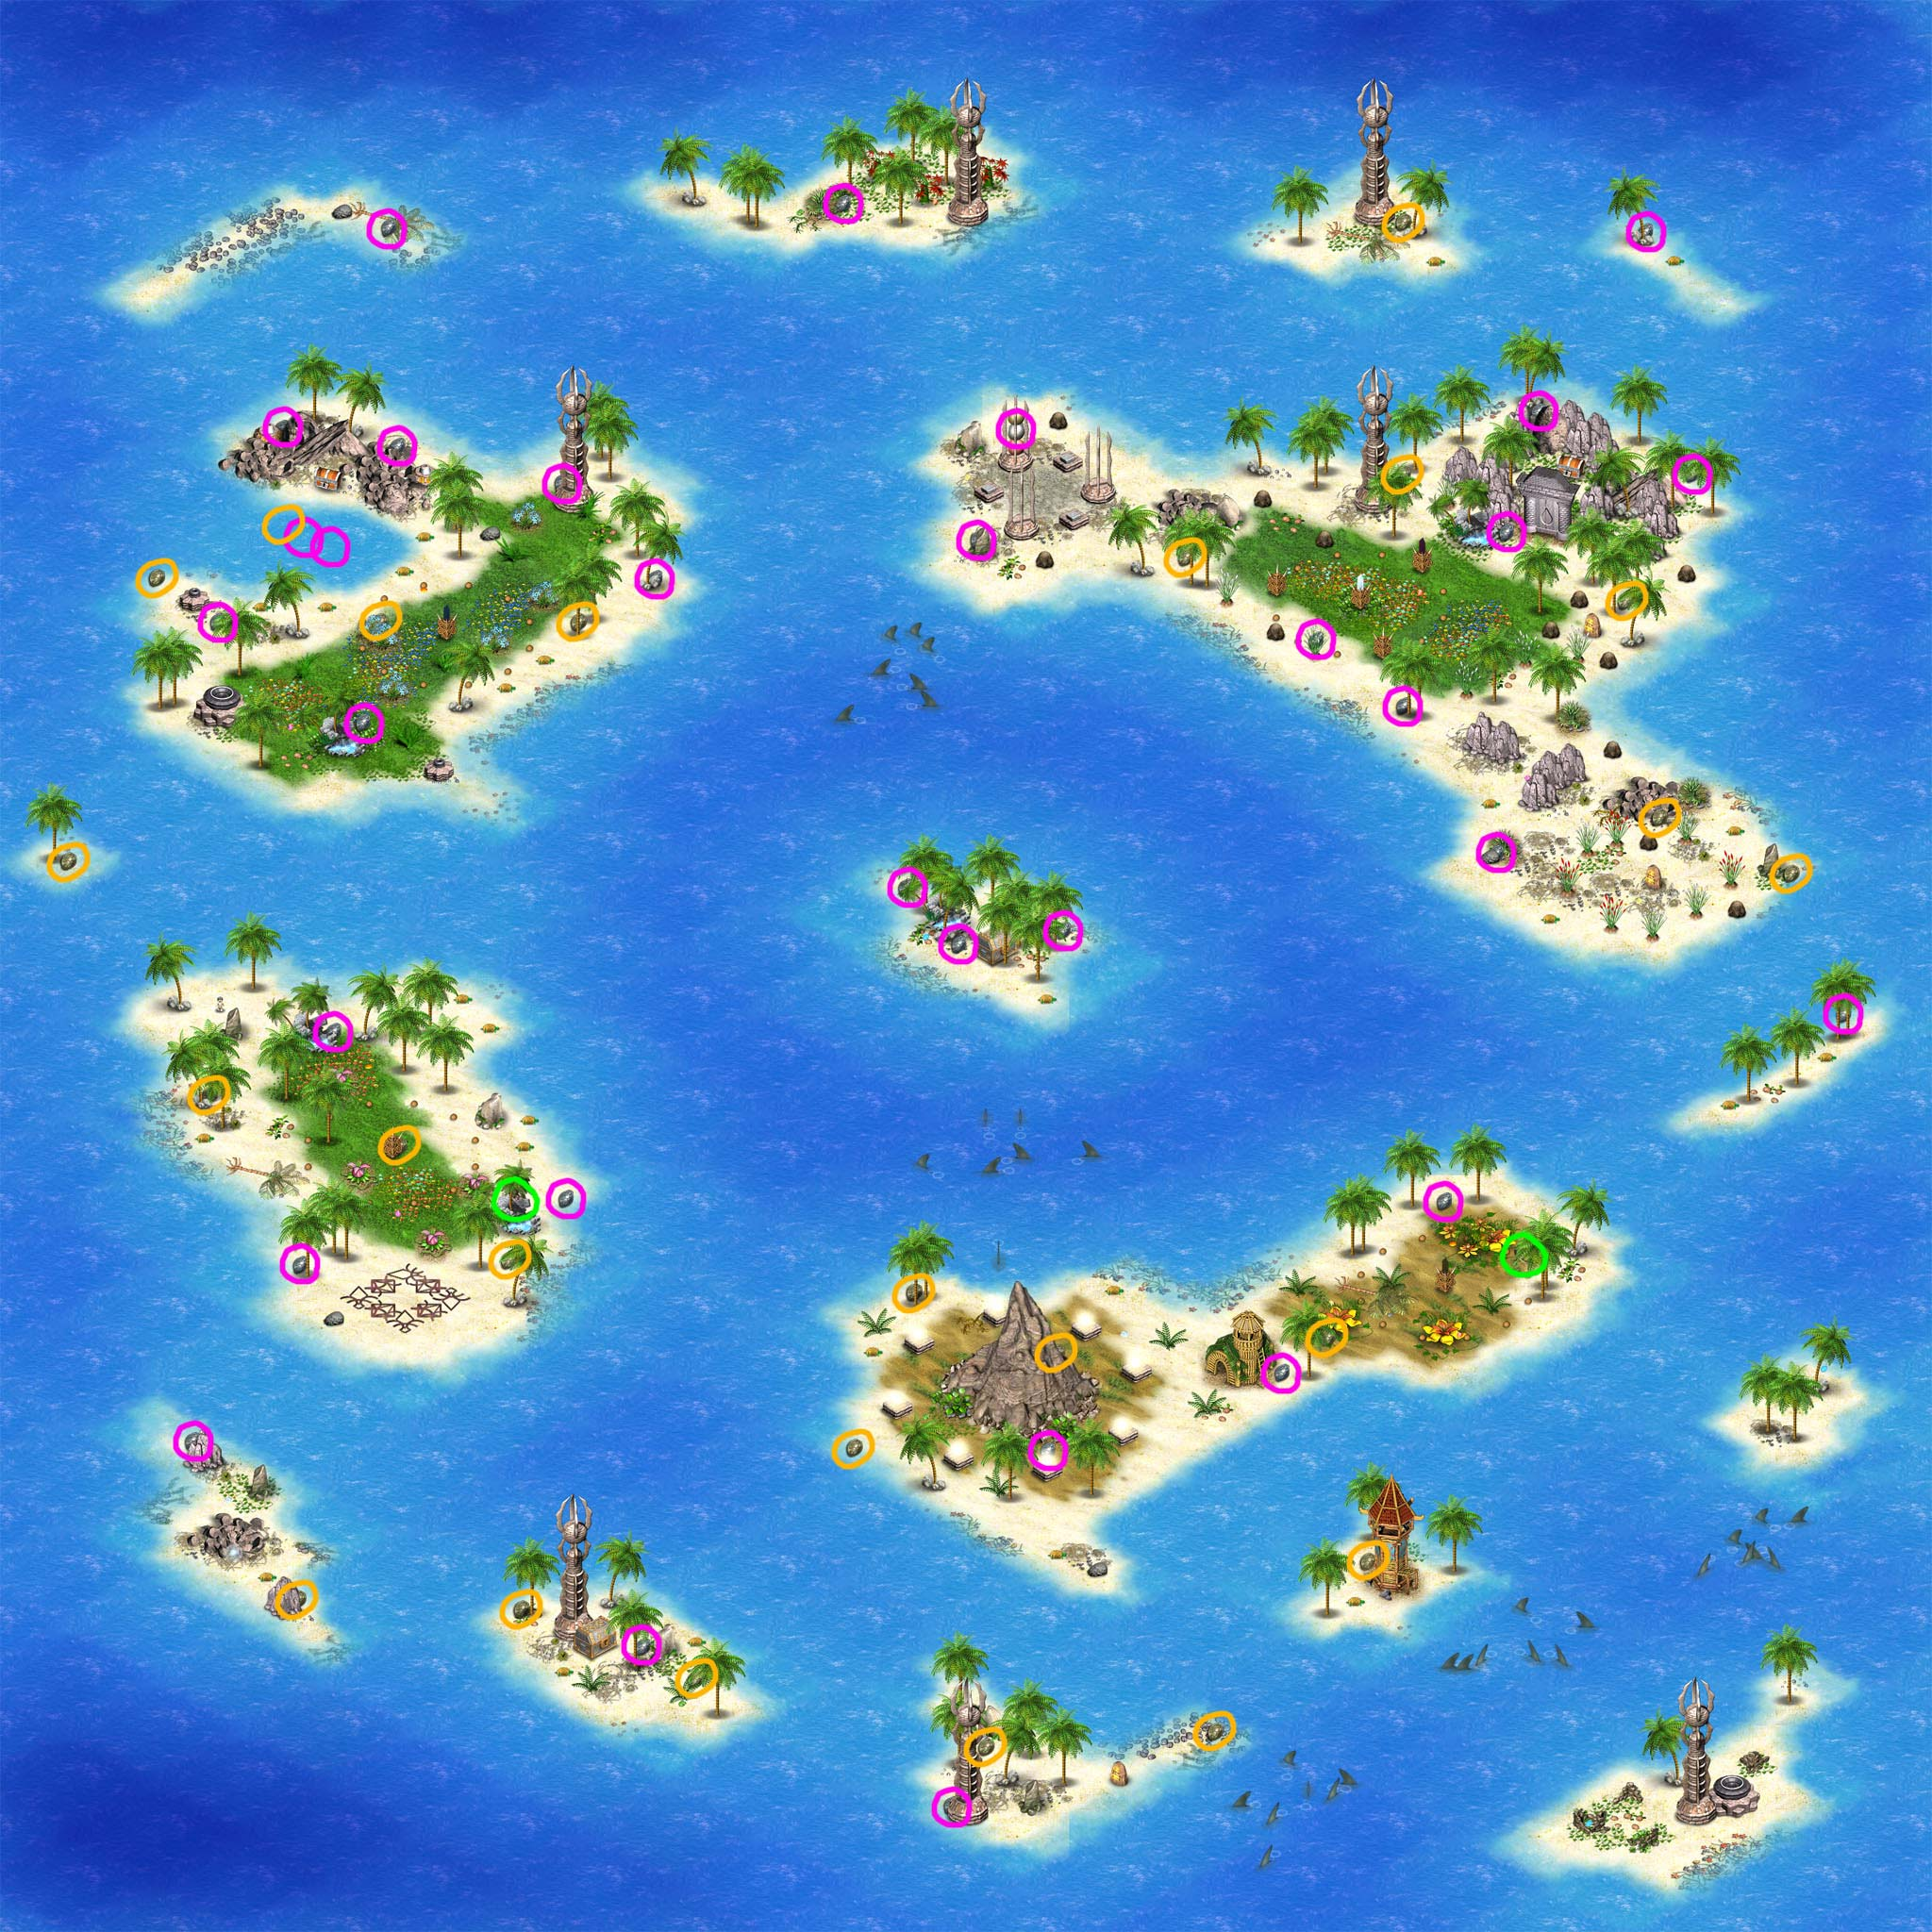 https://i0.wp.com/www.totemtribe.com/static/attachments-vb/7-tt-shark-archipelago-map.jpg